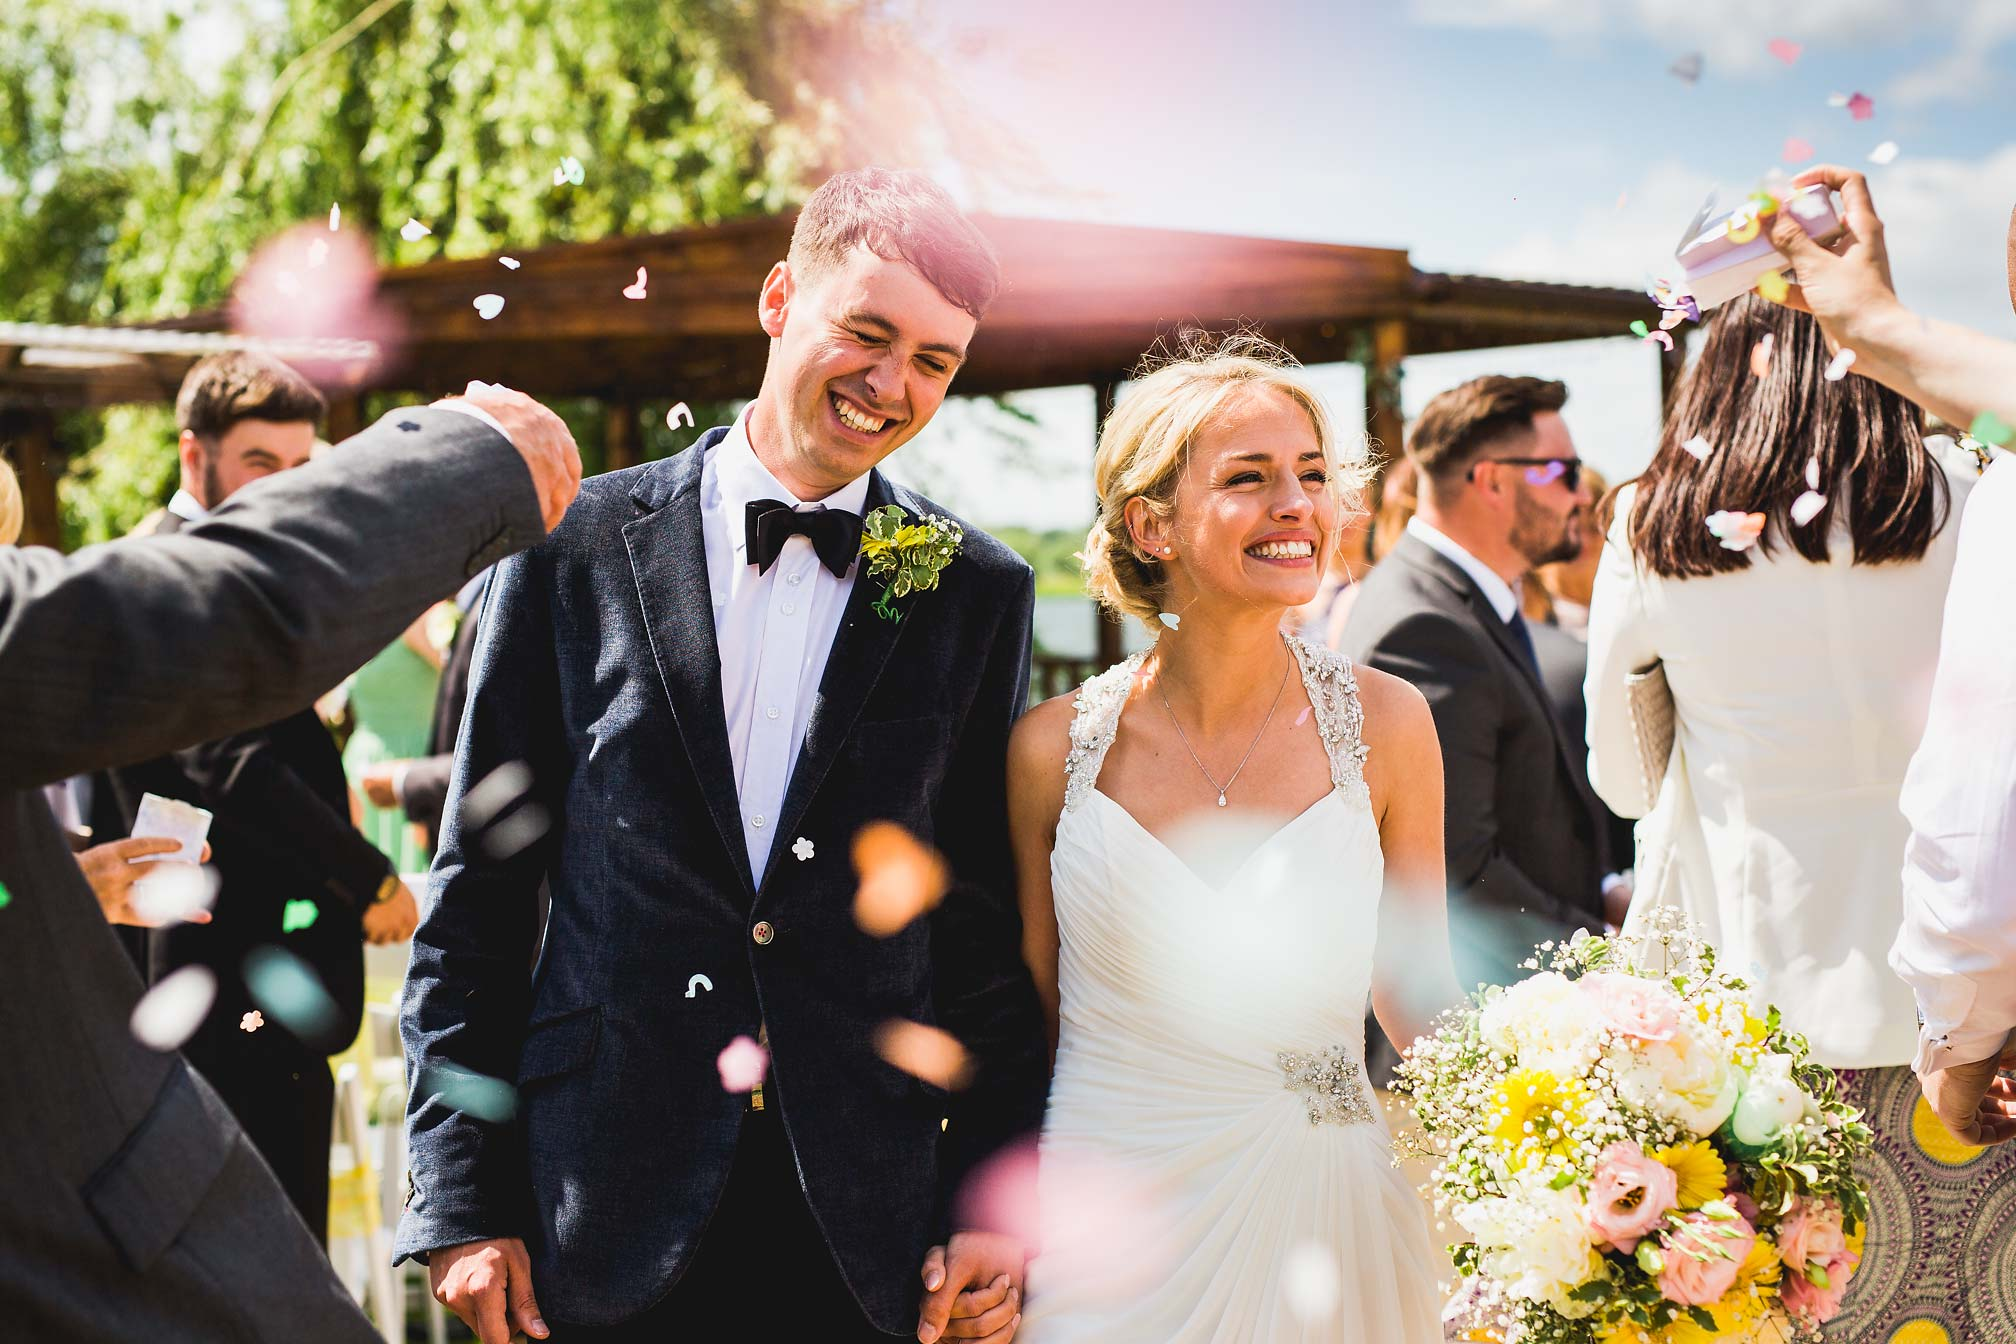 MyWed Editors Choice - Confetti Picture from a Northants Festival Wedding